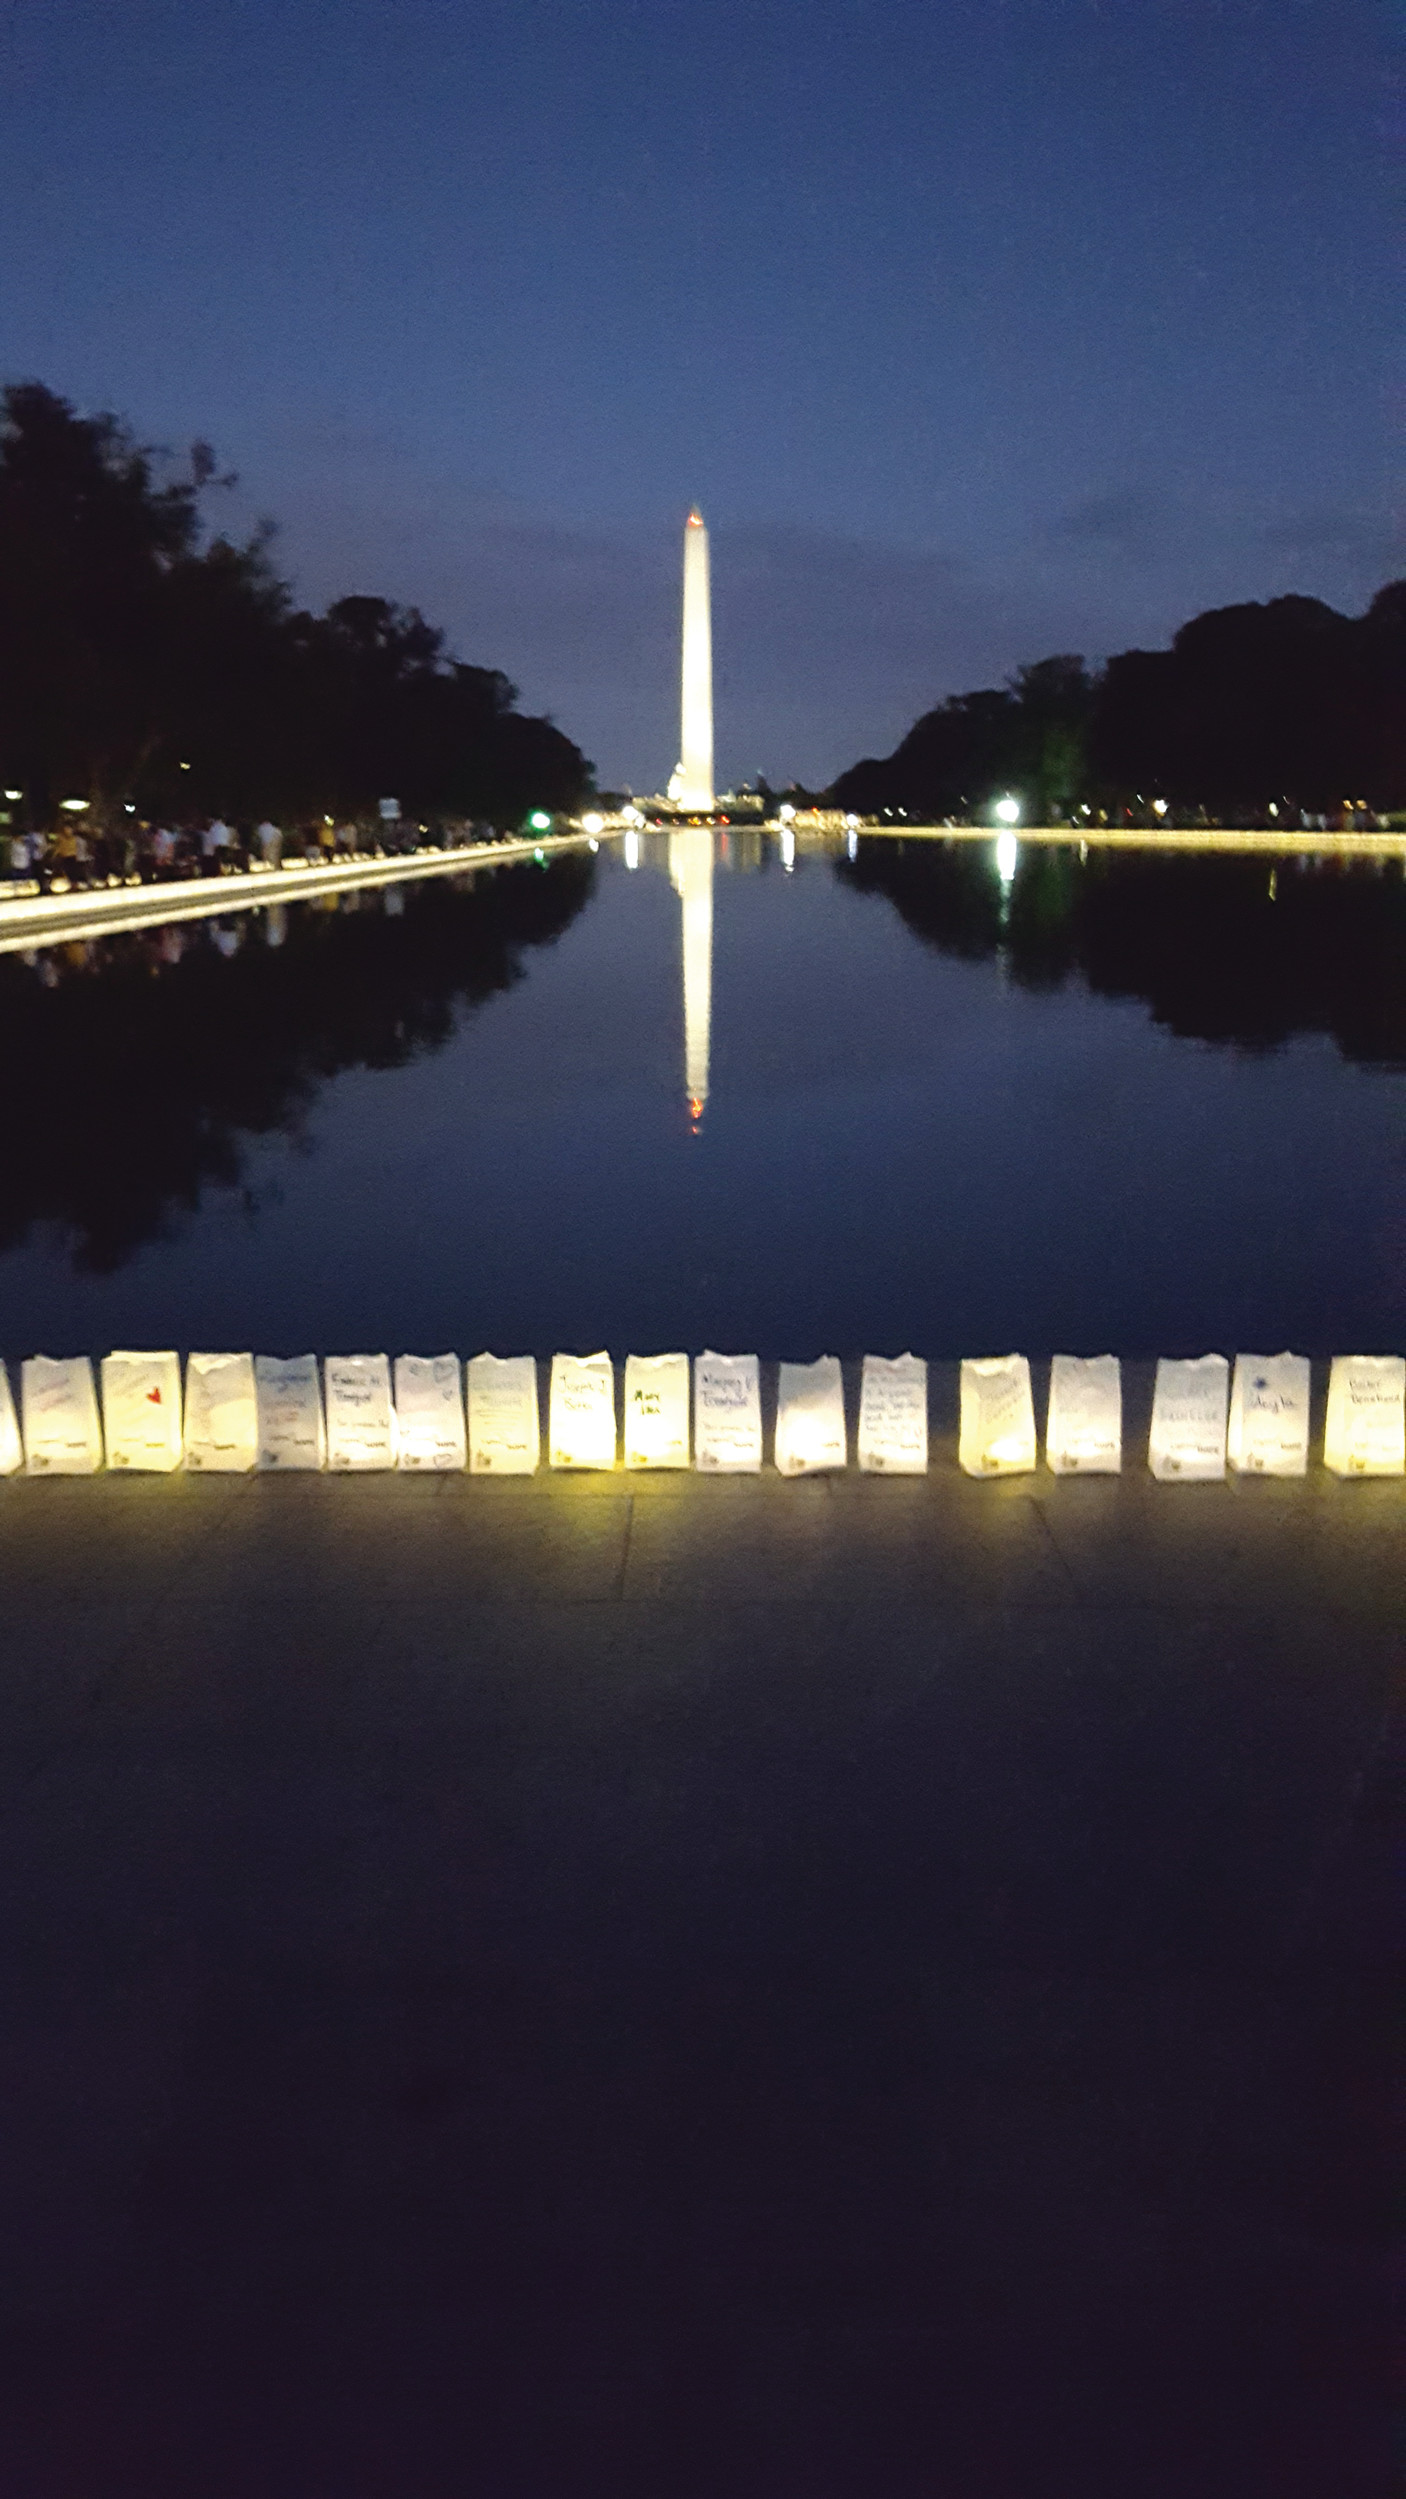 SHINING HOPE: More than 25,000 lined the reflecting pool in front of the Lincoln Memorial as part of the American Cancer Society lights of hope ceremony.